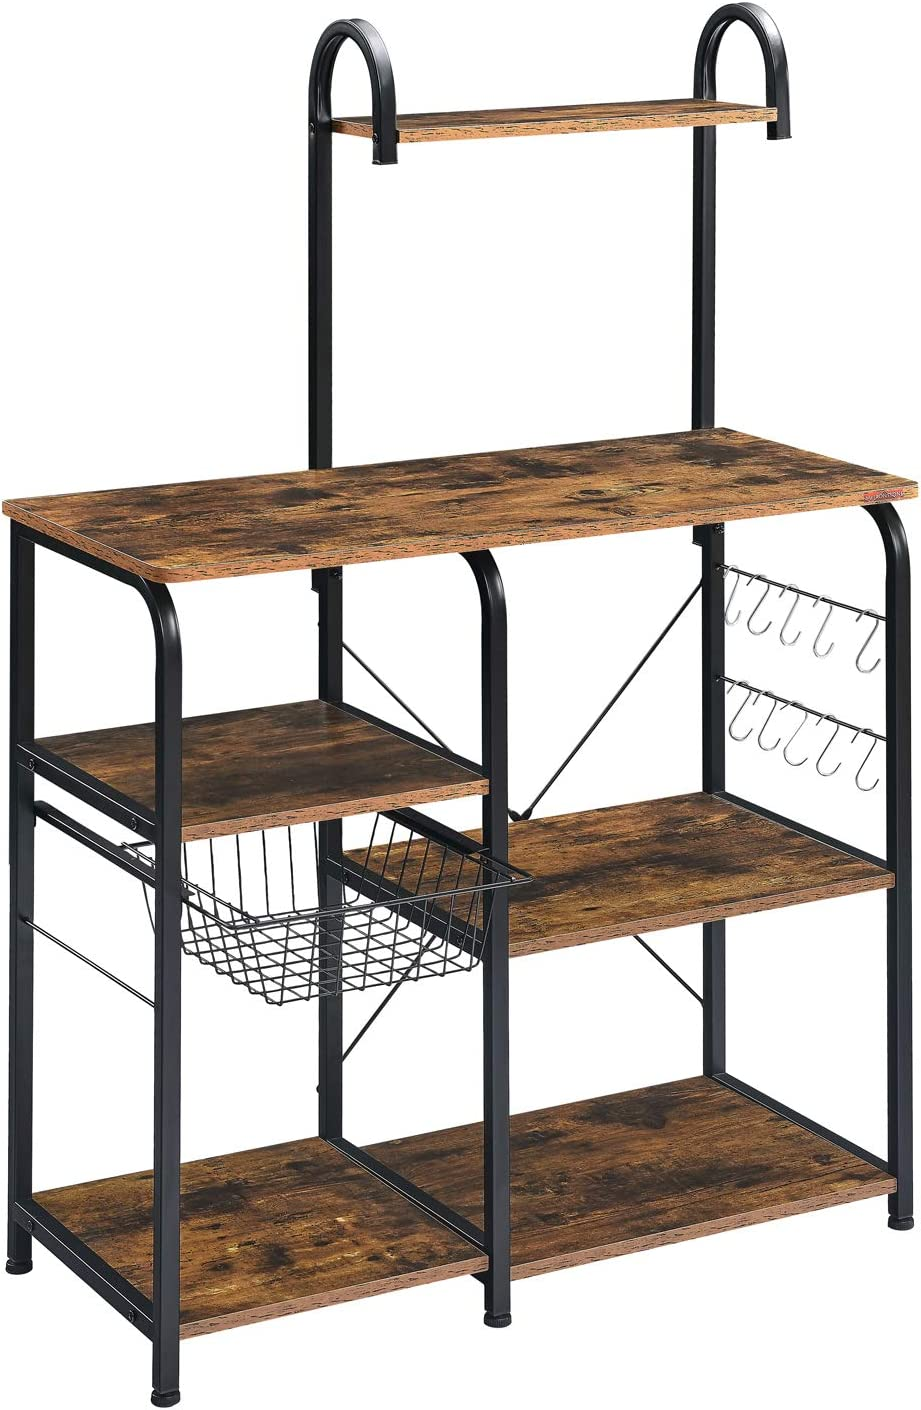 "Mr IRONSTONE Kitchen Baker's Rack Utility Storage Shelf 35.5"" Microwave Stand 4-Tier+3-Tier Shelf for Spice Rack Organizer Workstation(Rustic Brown)"